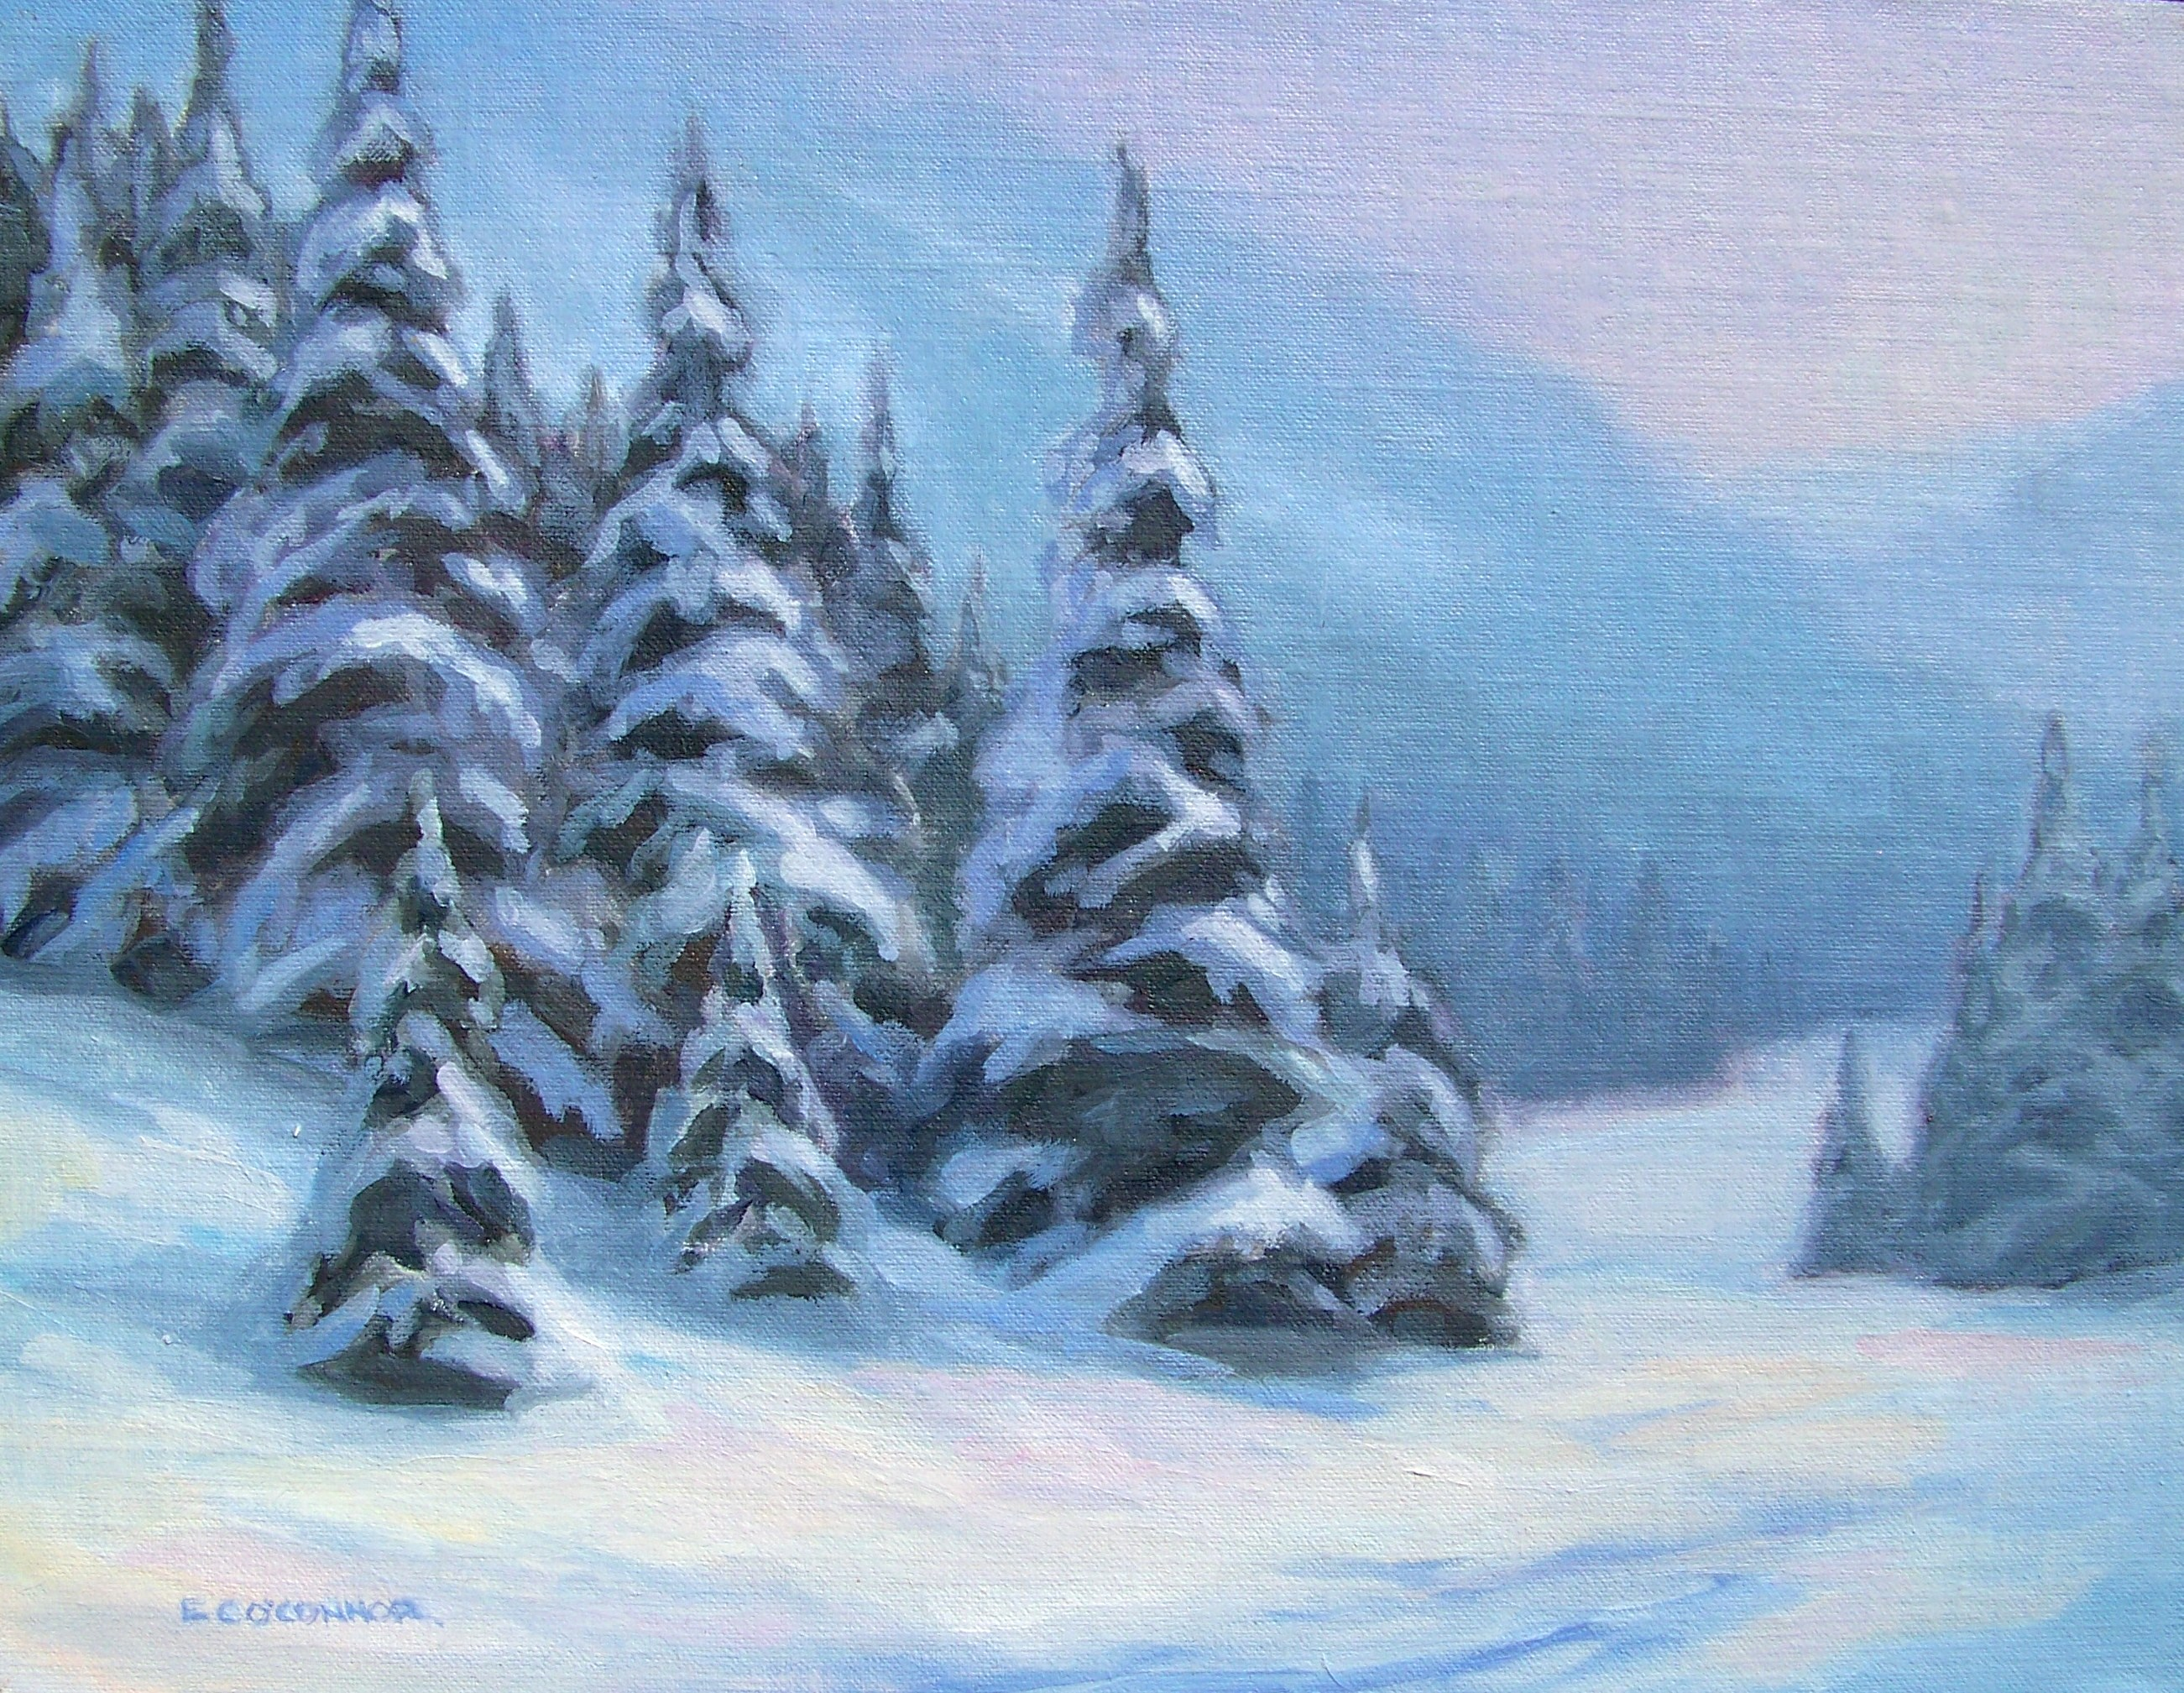 Winter In The Canyon, 11x14, oil on linen